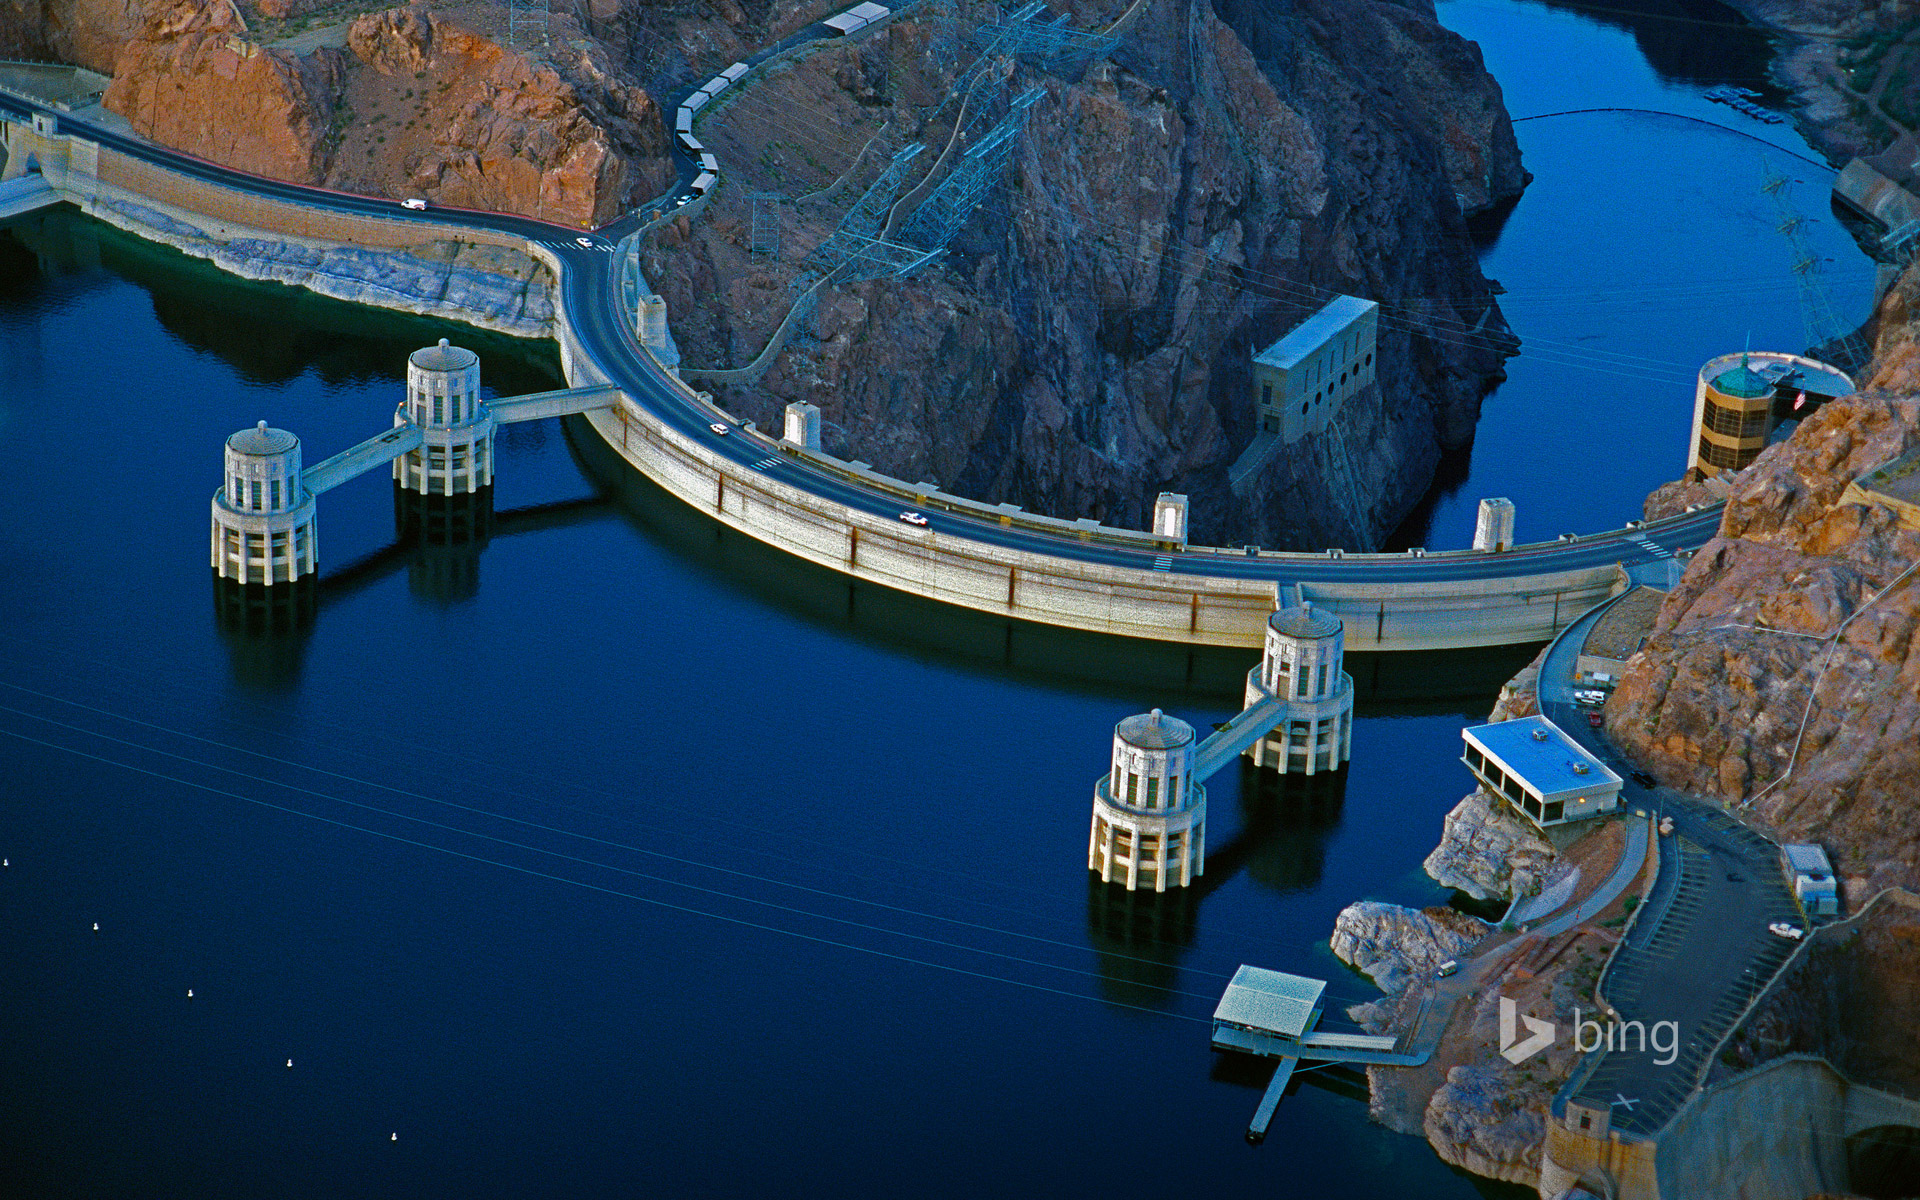 Hoover Dam on the border between Arizona and Nevada